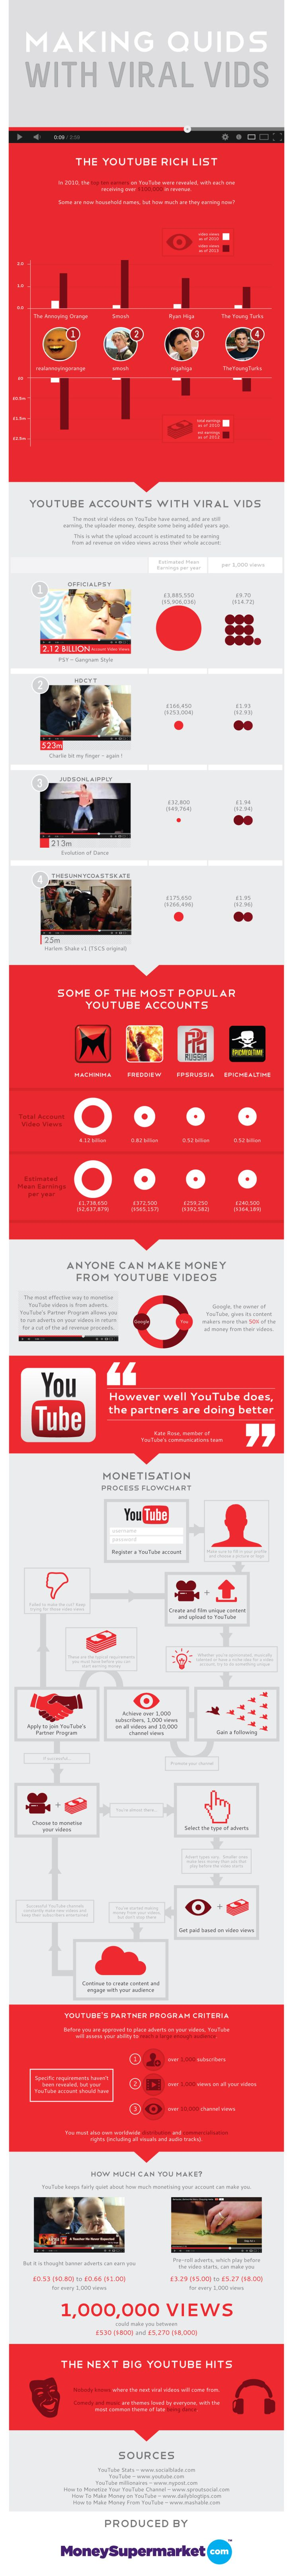 How Much The Top YouTubers Make | Infographic